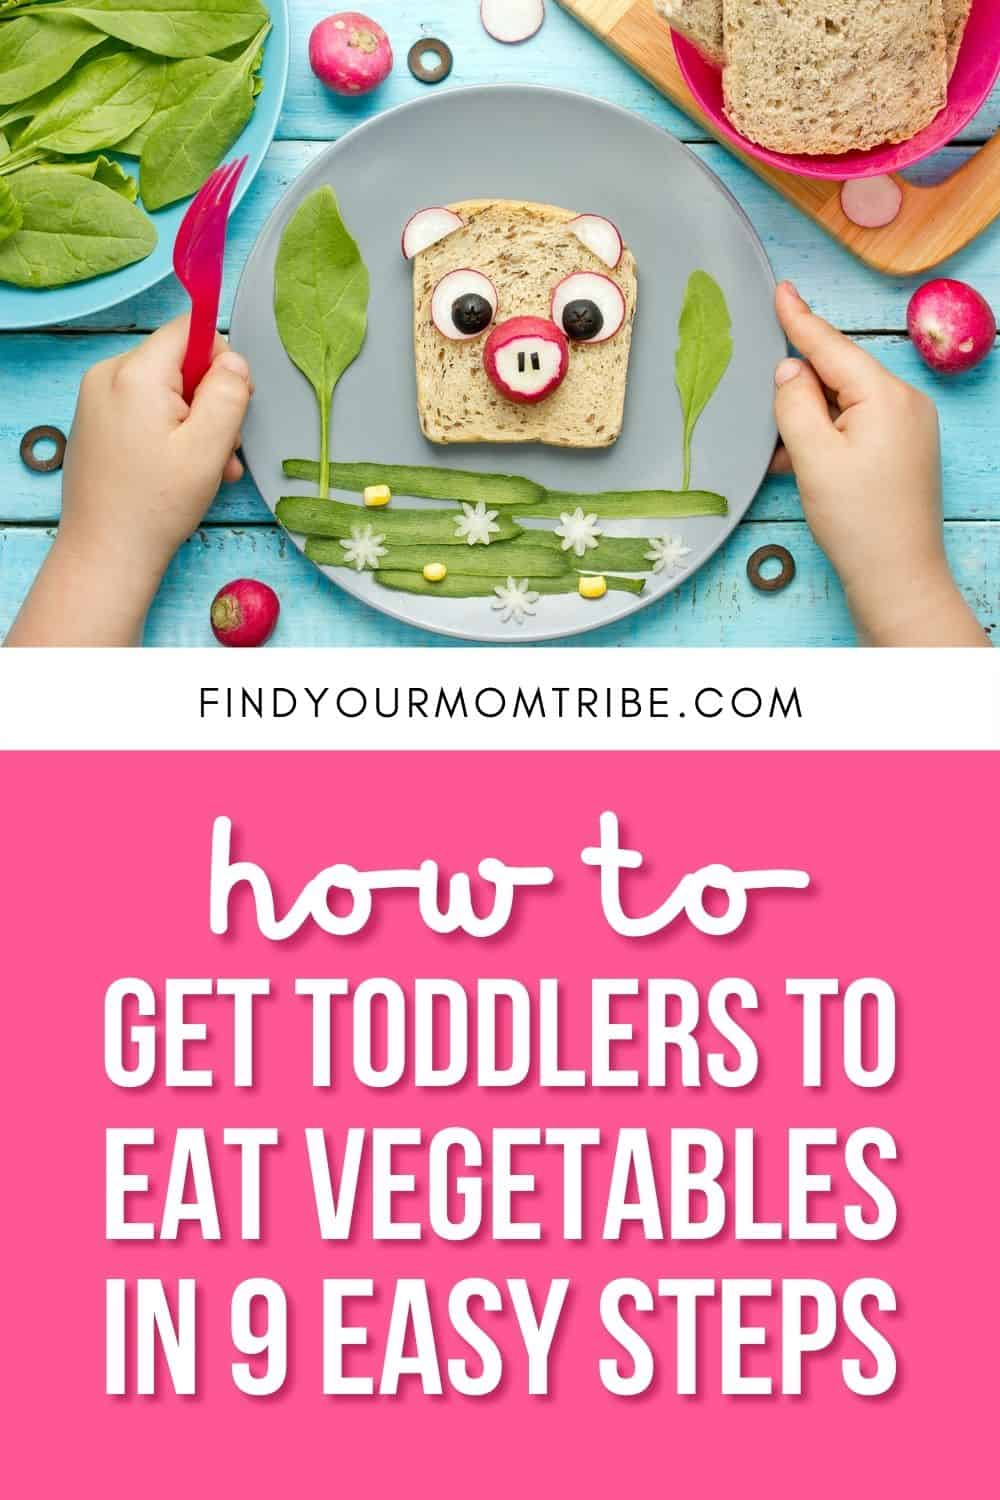 How To Get Toddlers To Eat Vegetables In 9 Easy Steps Pinterest